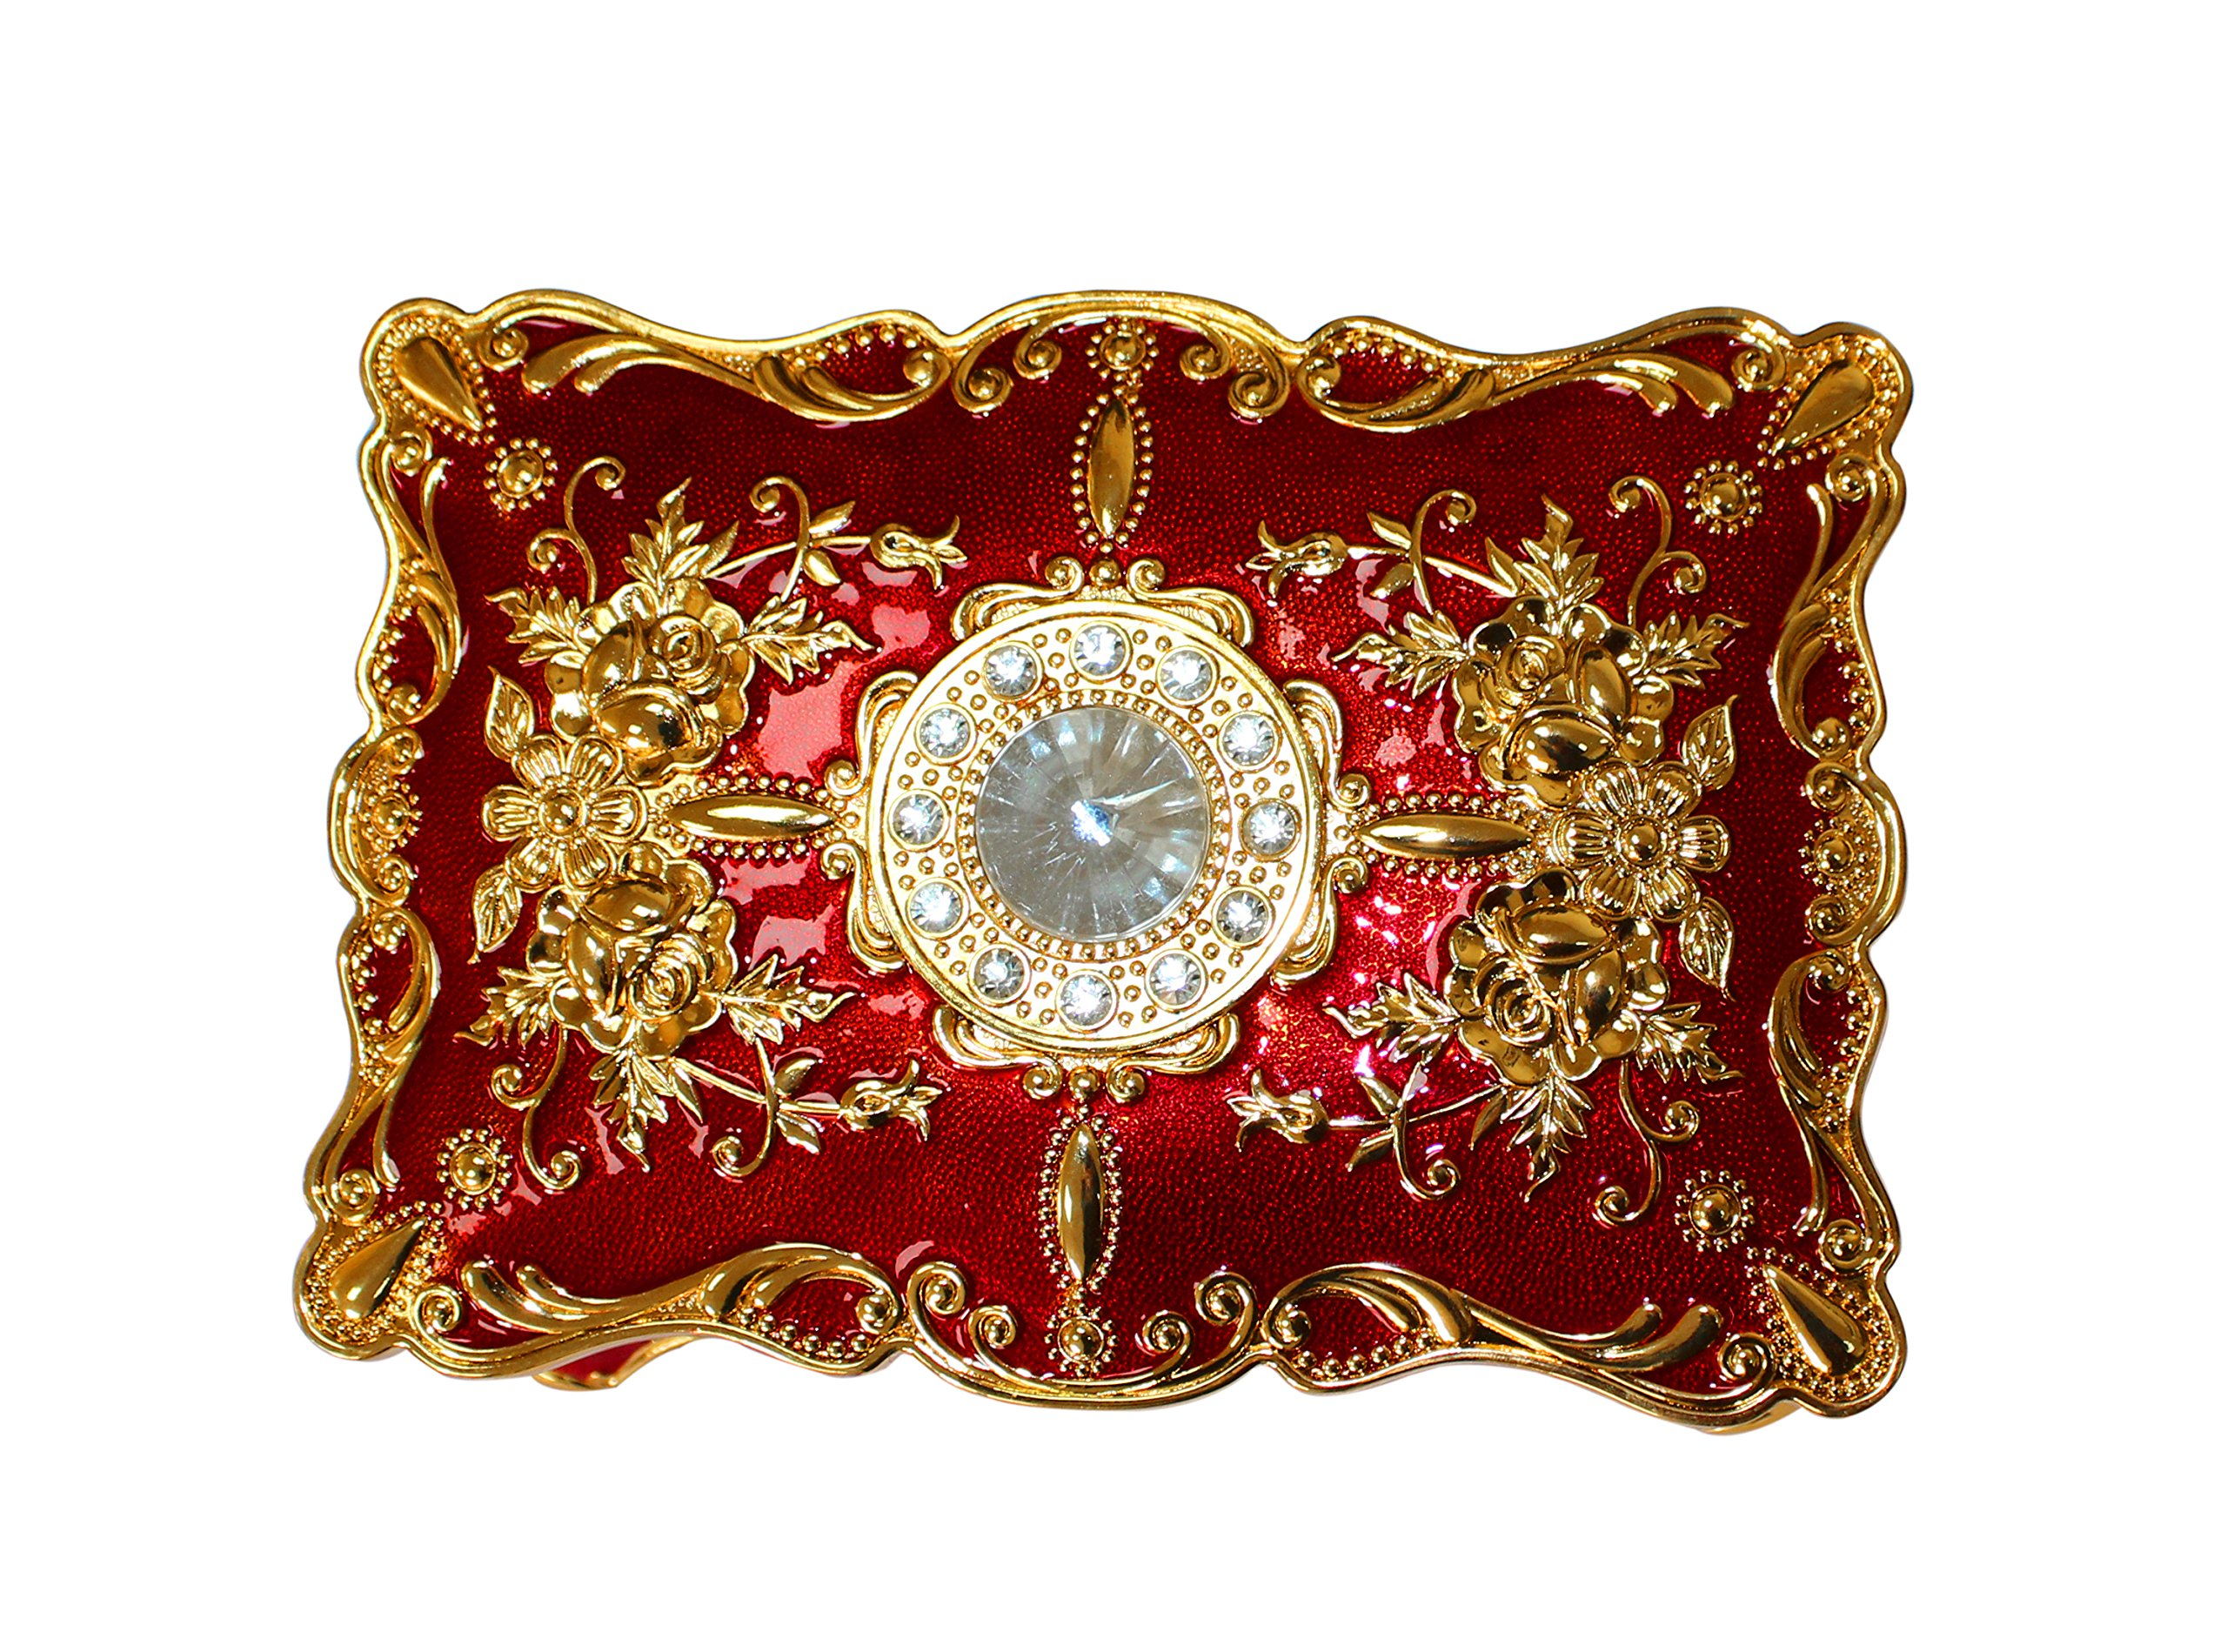 Goddess Area Vintage Jewelry Box with Ornate Antique Finish Rectangular Trinket (Red) by Goddess Area (Image #4)